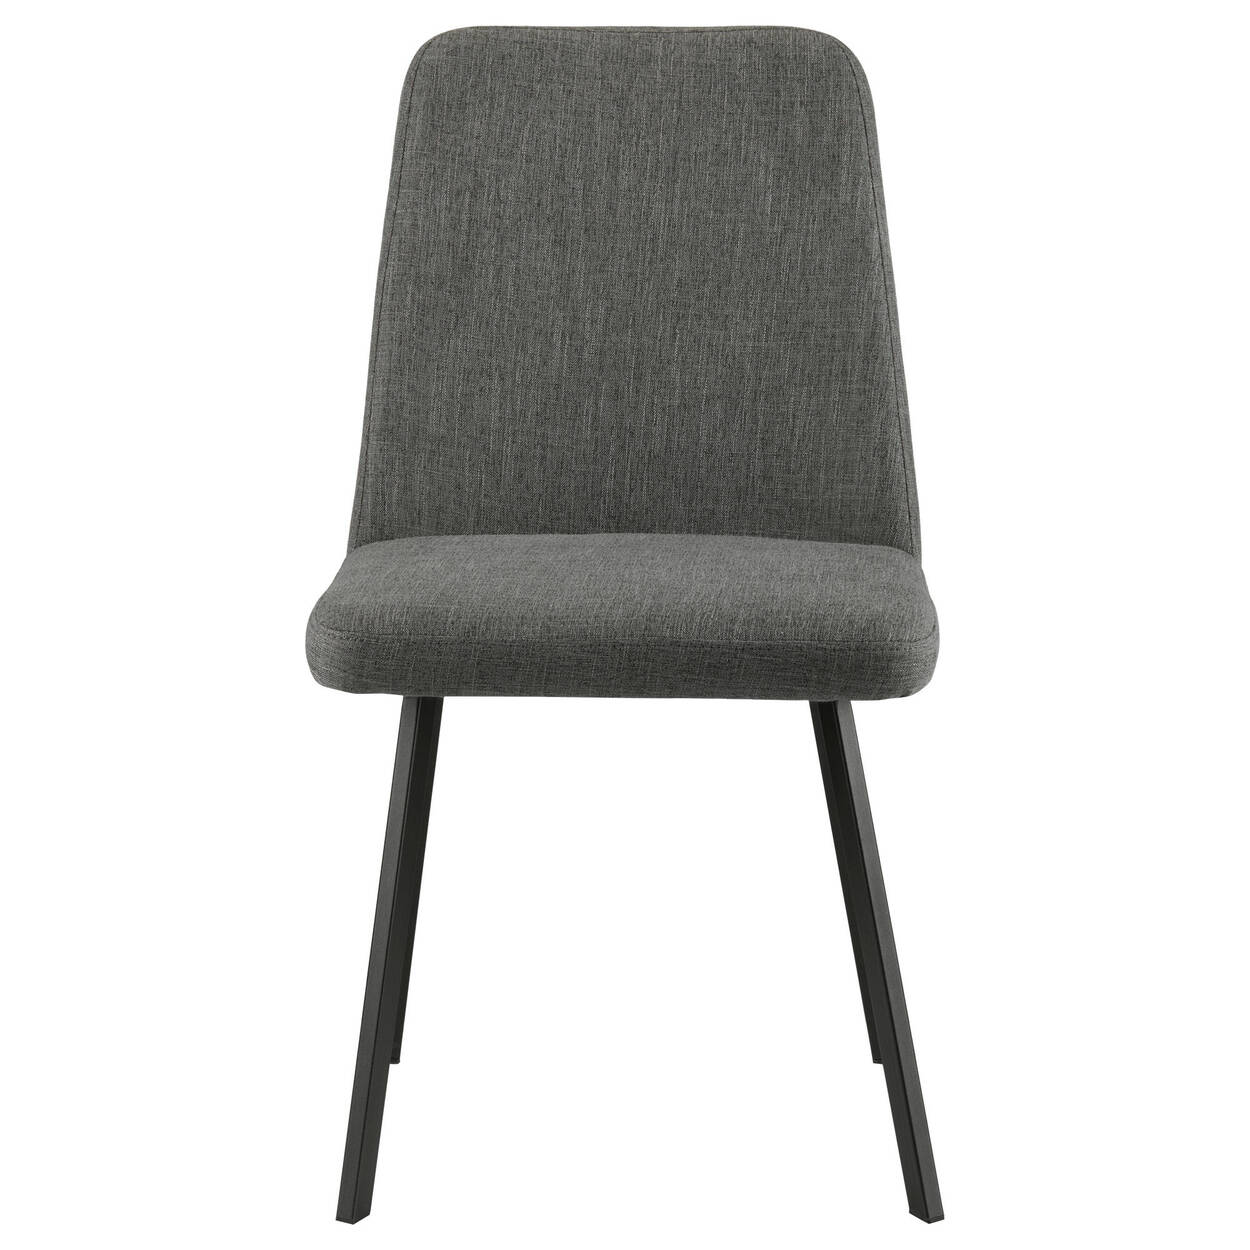 Superb Chita Fabric And Metal Dining Chair Home Interior And Landscaping Oversignezvosmurscom